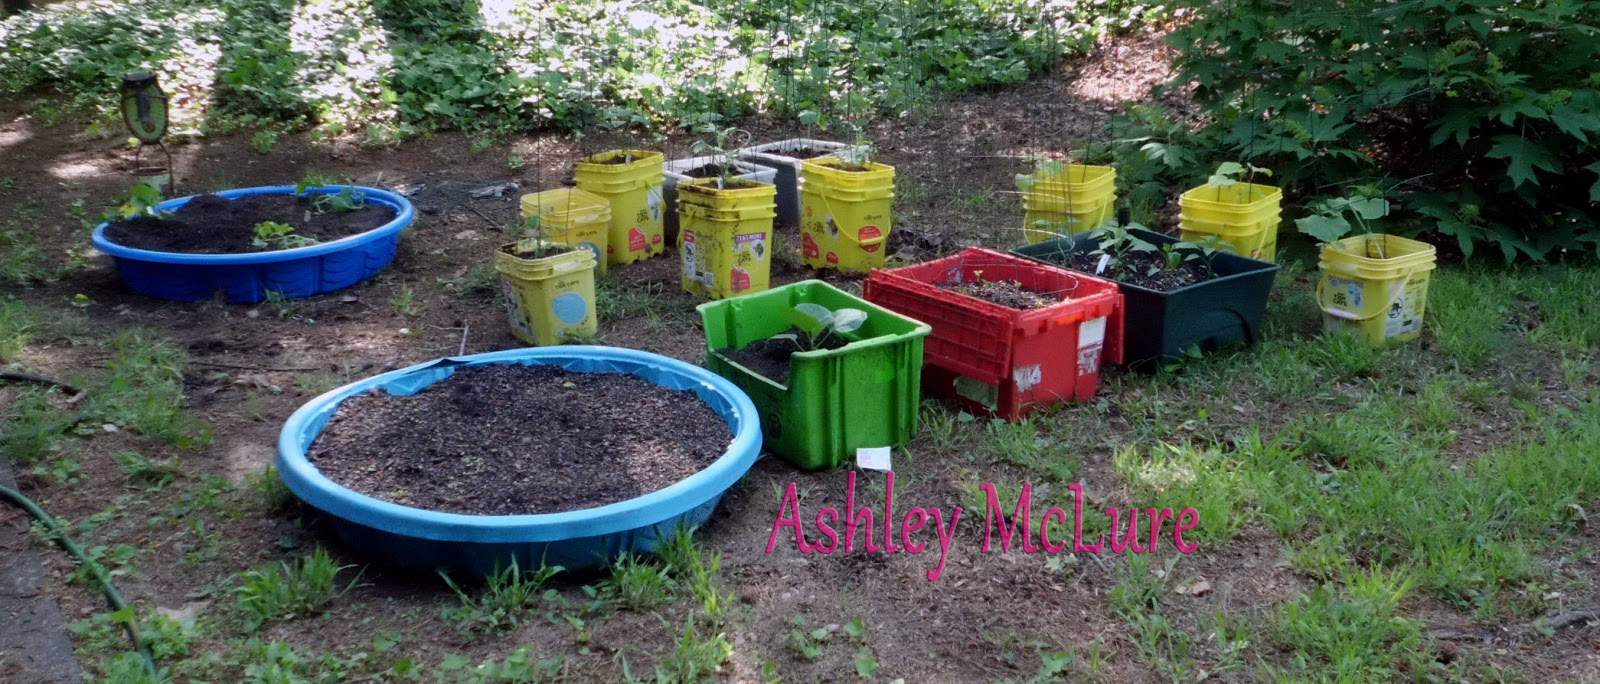 Ashley 39 s random blog recycled container garden - Recycled containers for gardening ...